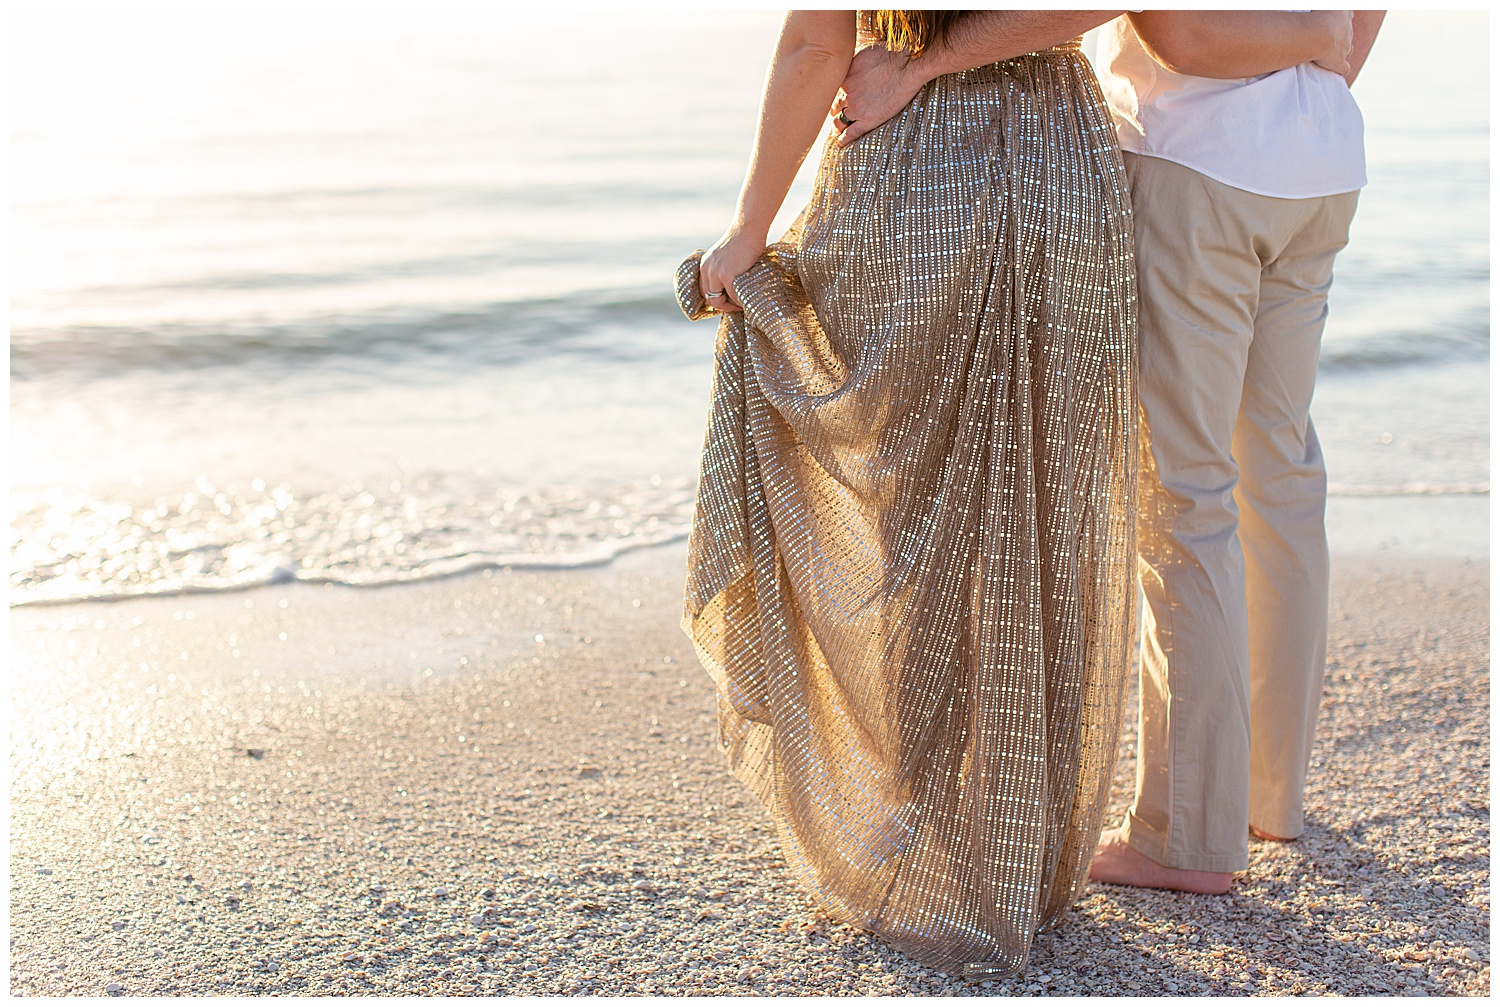 emily-belson-photography-florida-engagement-19.jpg